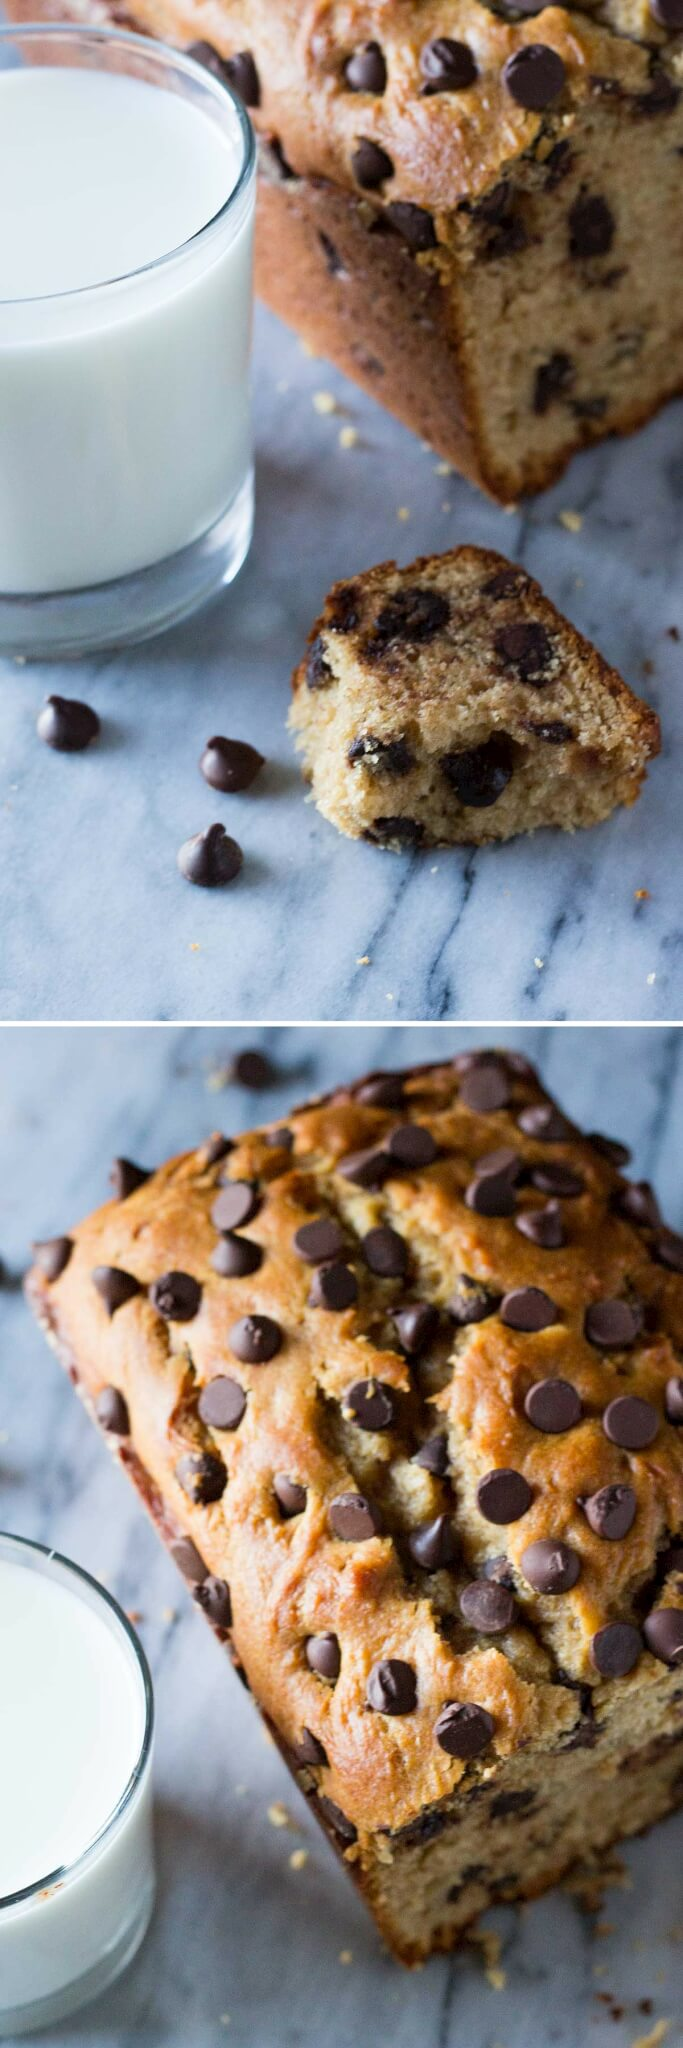 Skip the toast and make this super soft, extra flavorful, ridiculously moist Peanut Butter Chocolate Chip Bread.